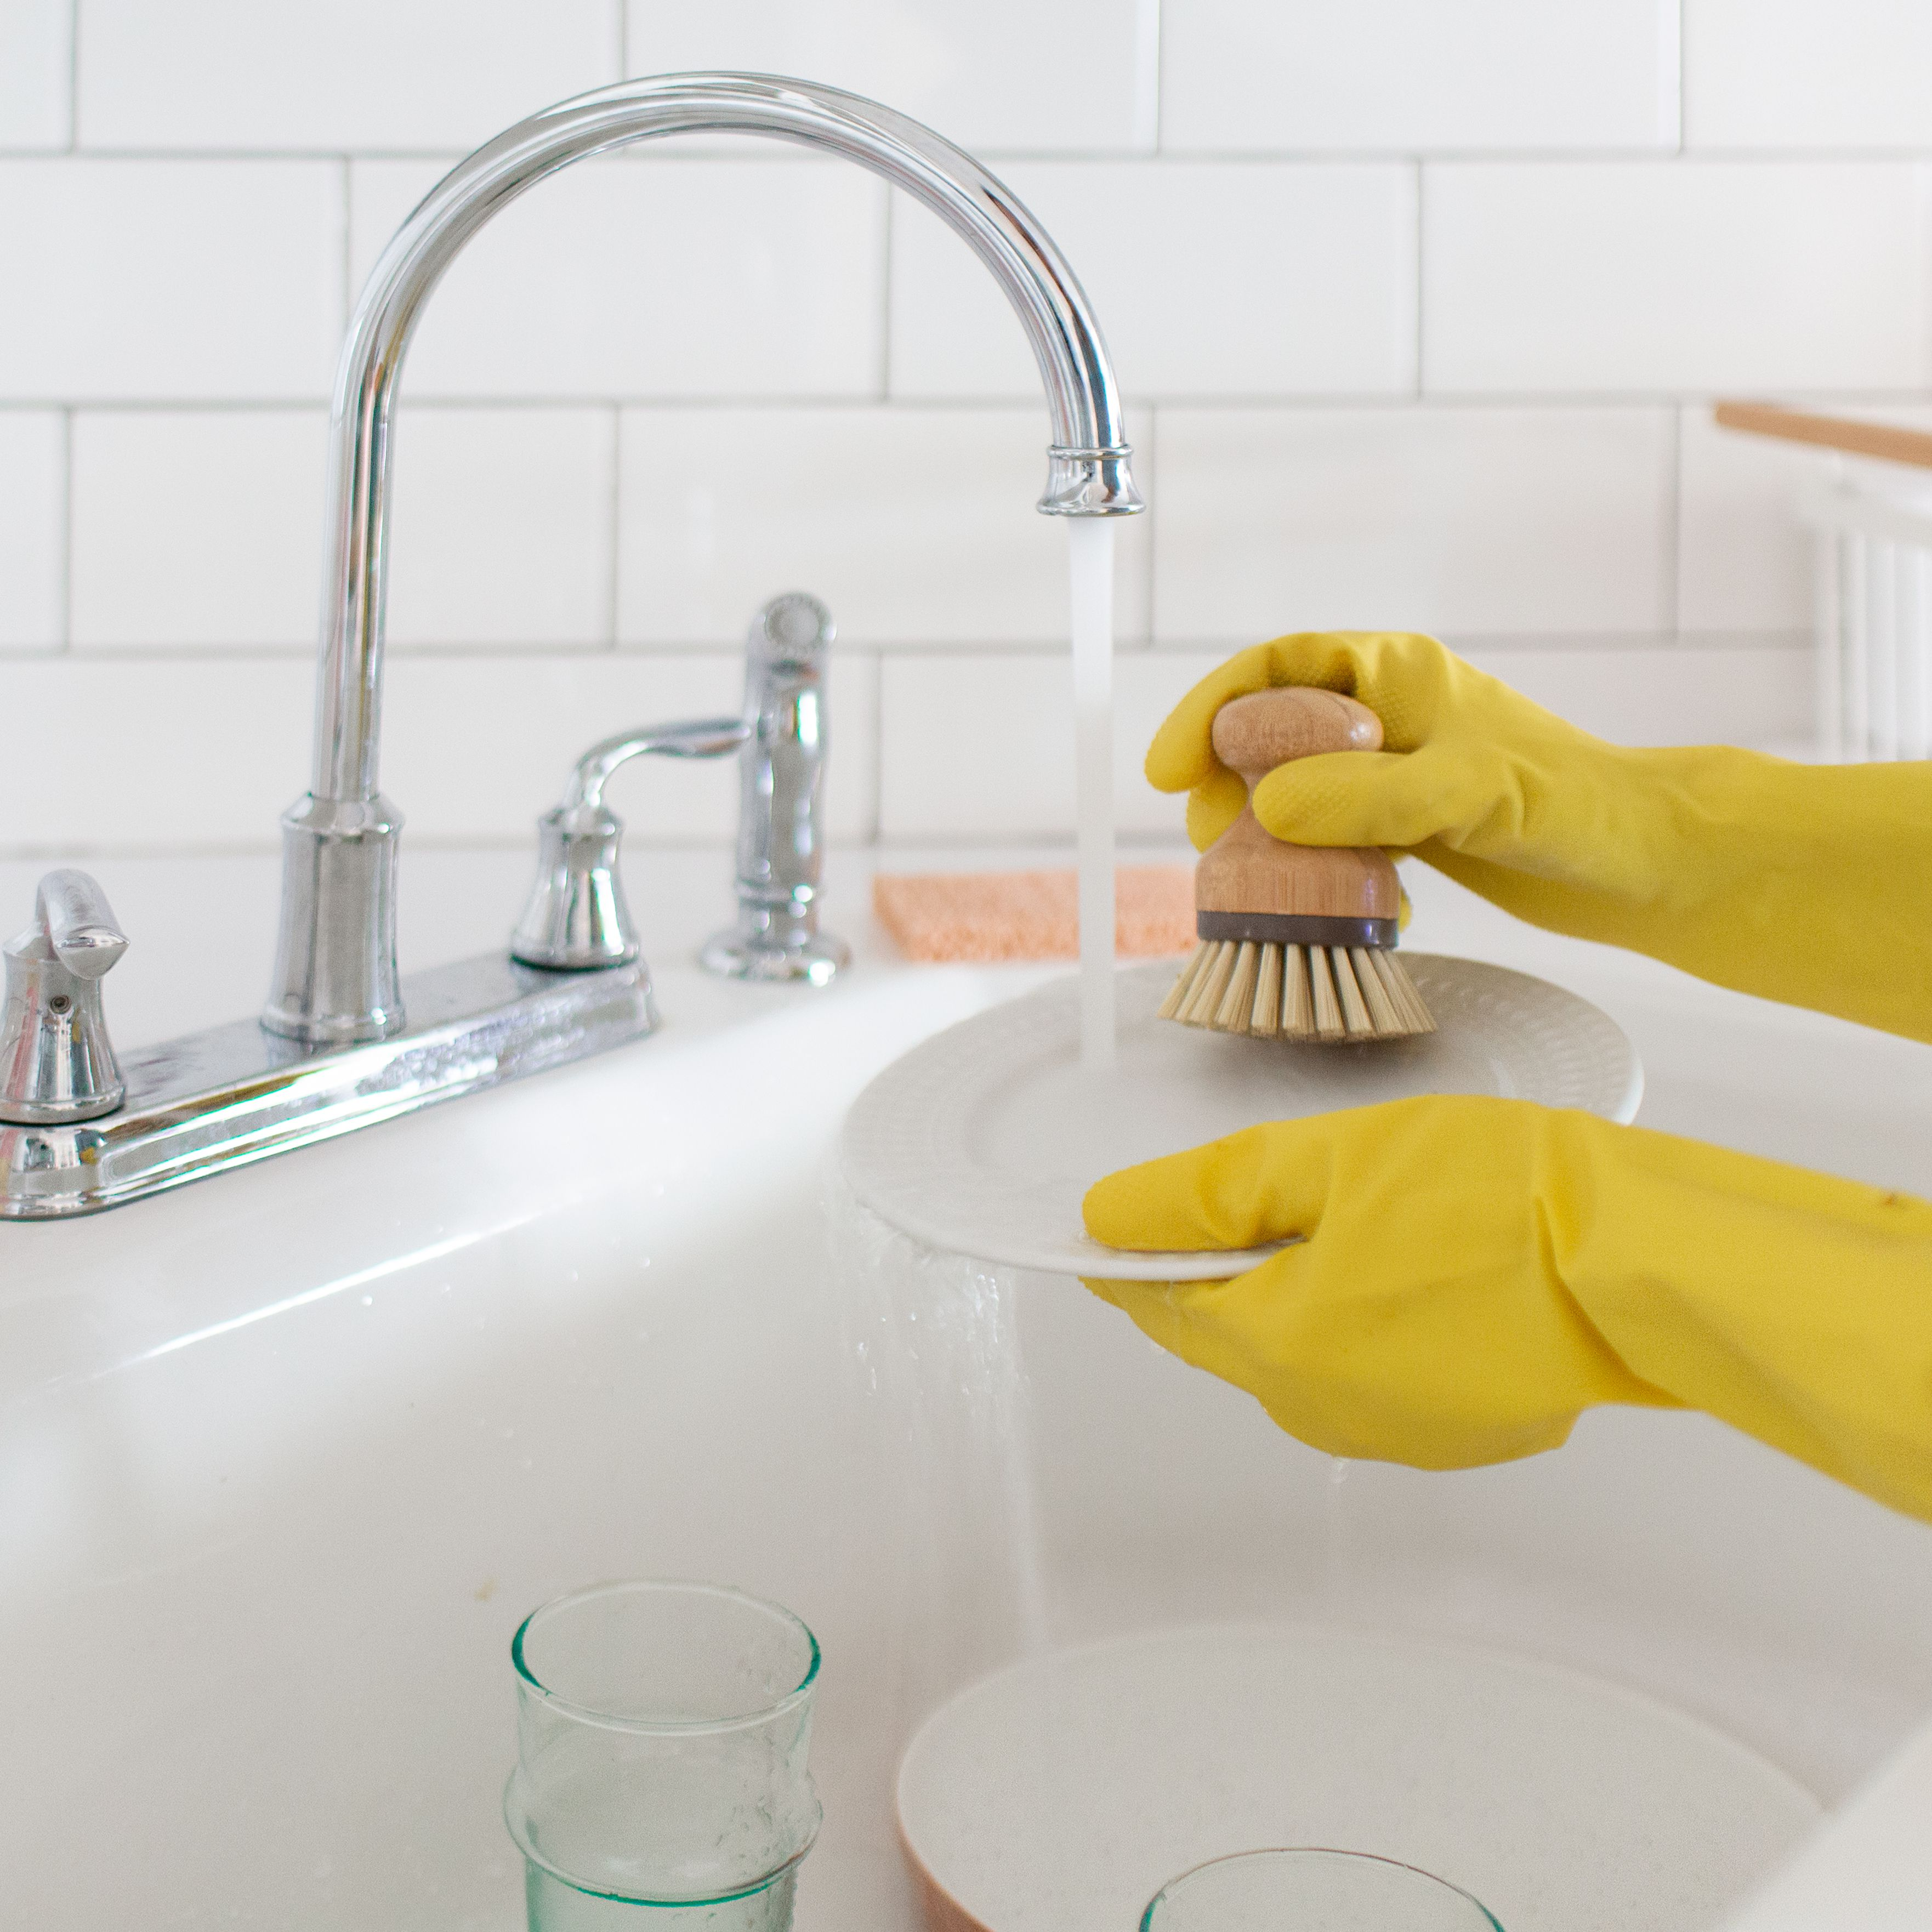 Does Your Hot Water Kill Bacteria